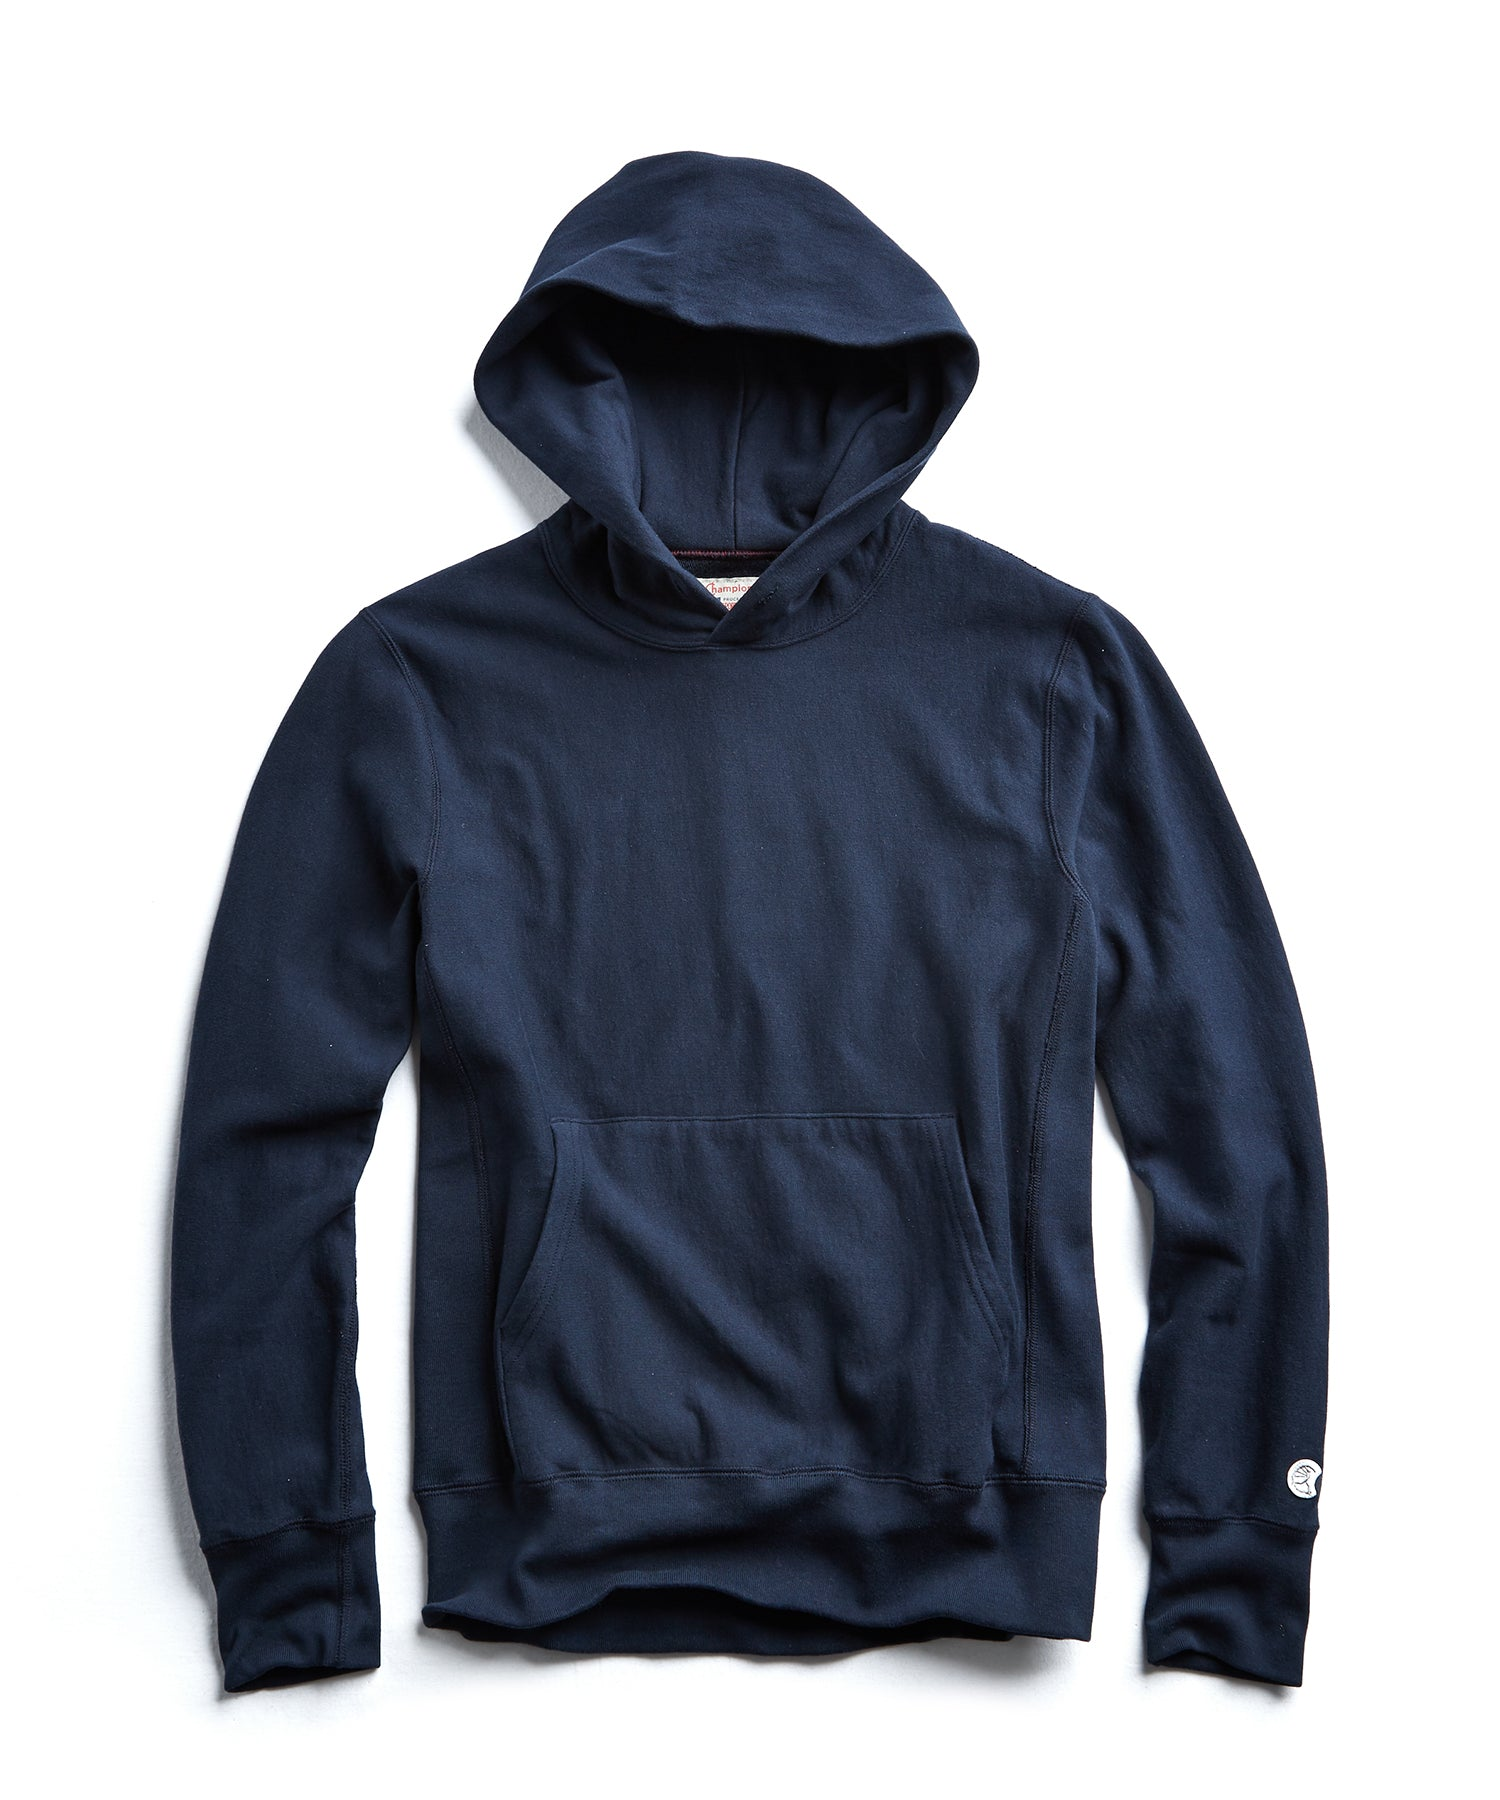 Terry Popover Hoodie Sweatshirt in Original Navy